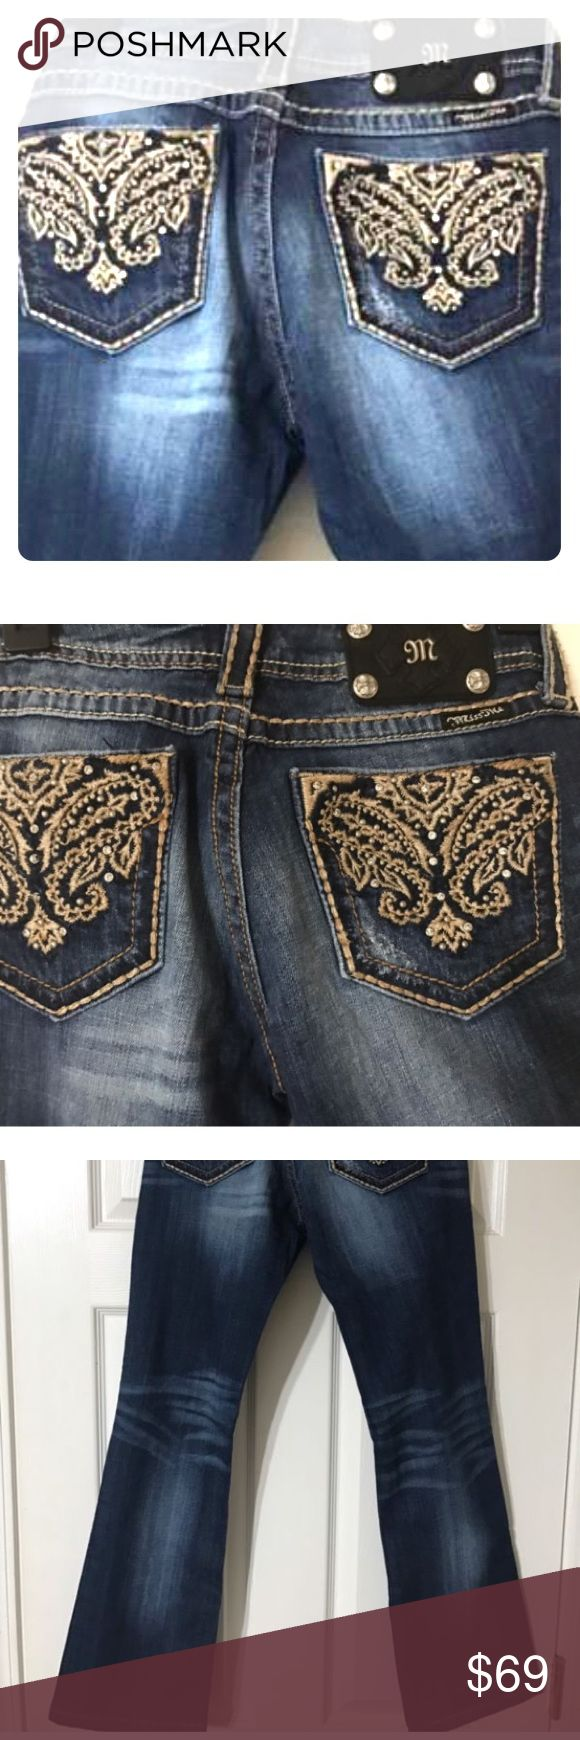 New ❤️ SUPER HOT MISS ME BLING BOOTY JEANS Size 28 New ❤️ SUPER HOT MISS ME BLING BOOTY JEANS Size 28. What these do for the rear end, should b illegal. 🚔🚨🚨. You will love these. New with out tag Miss Me Jeans Boot Cut